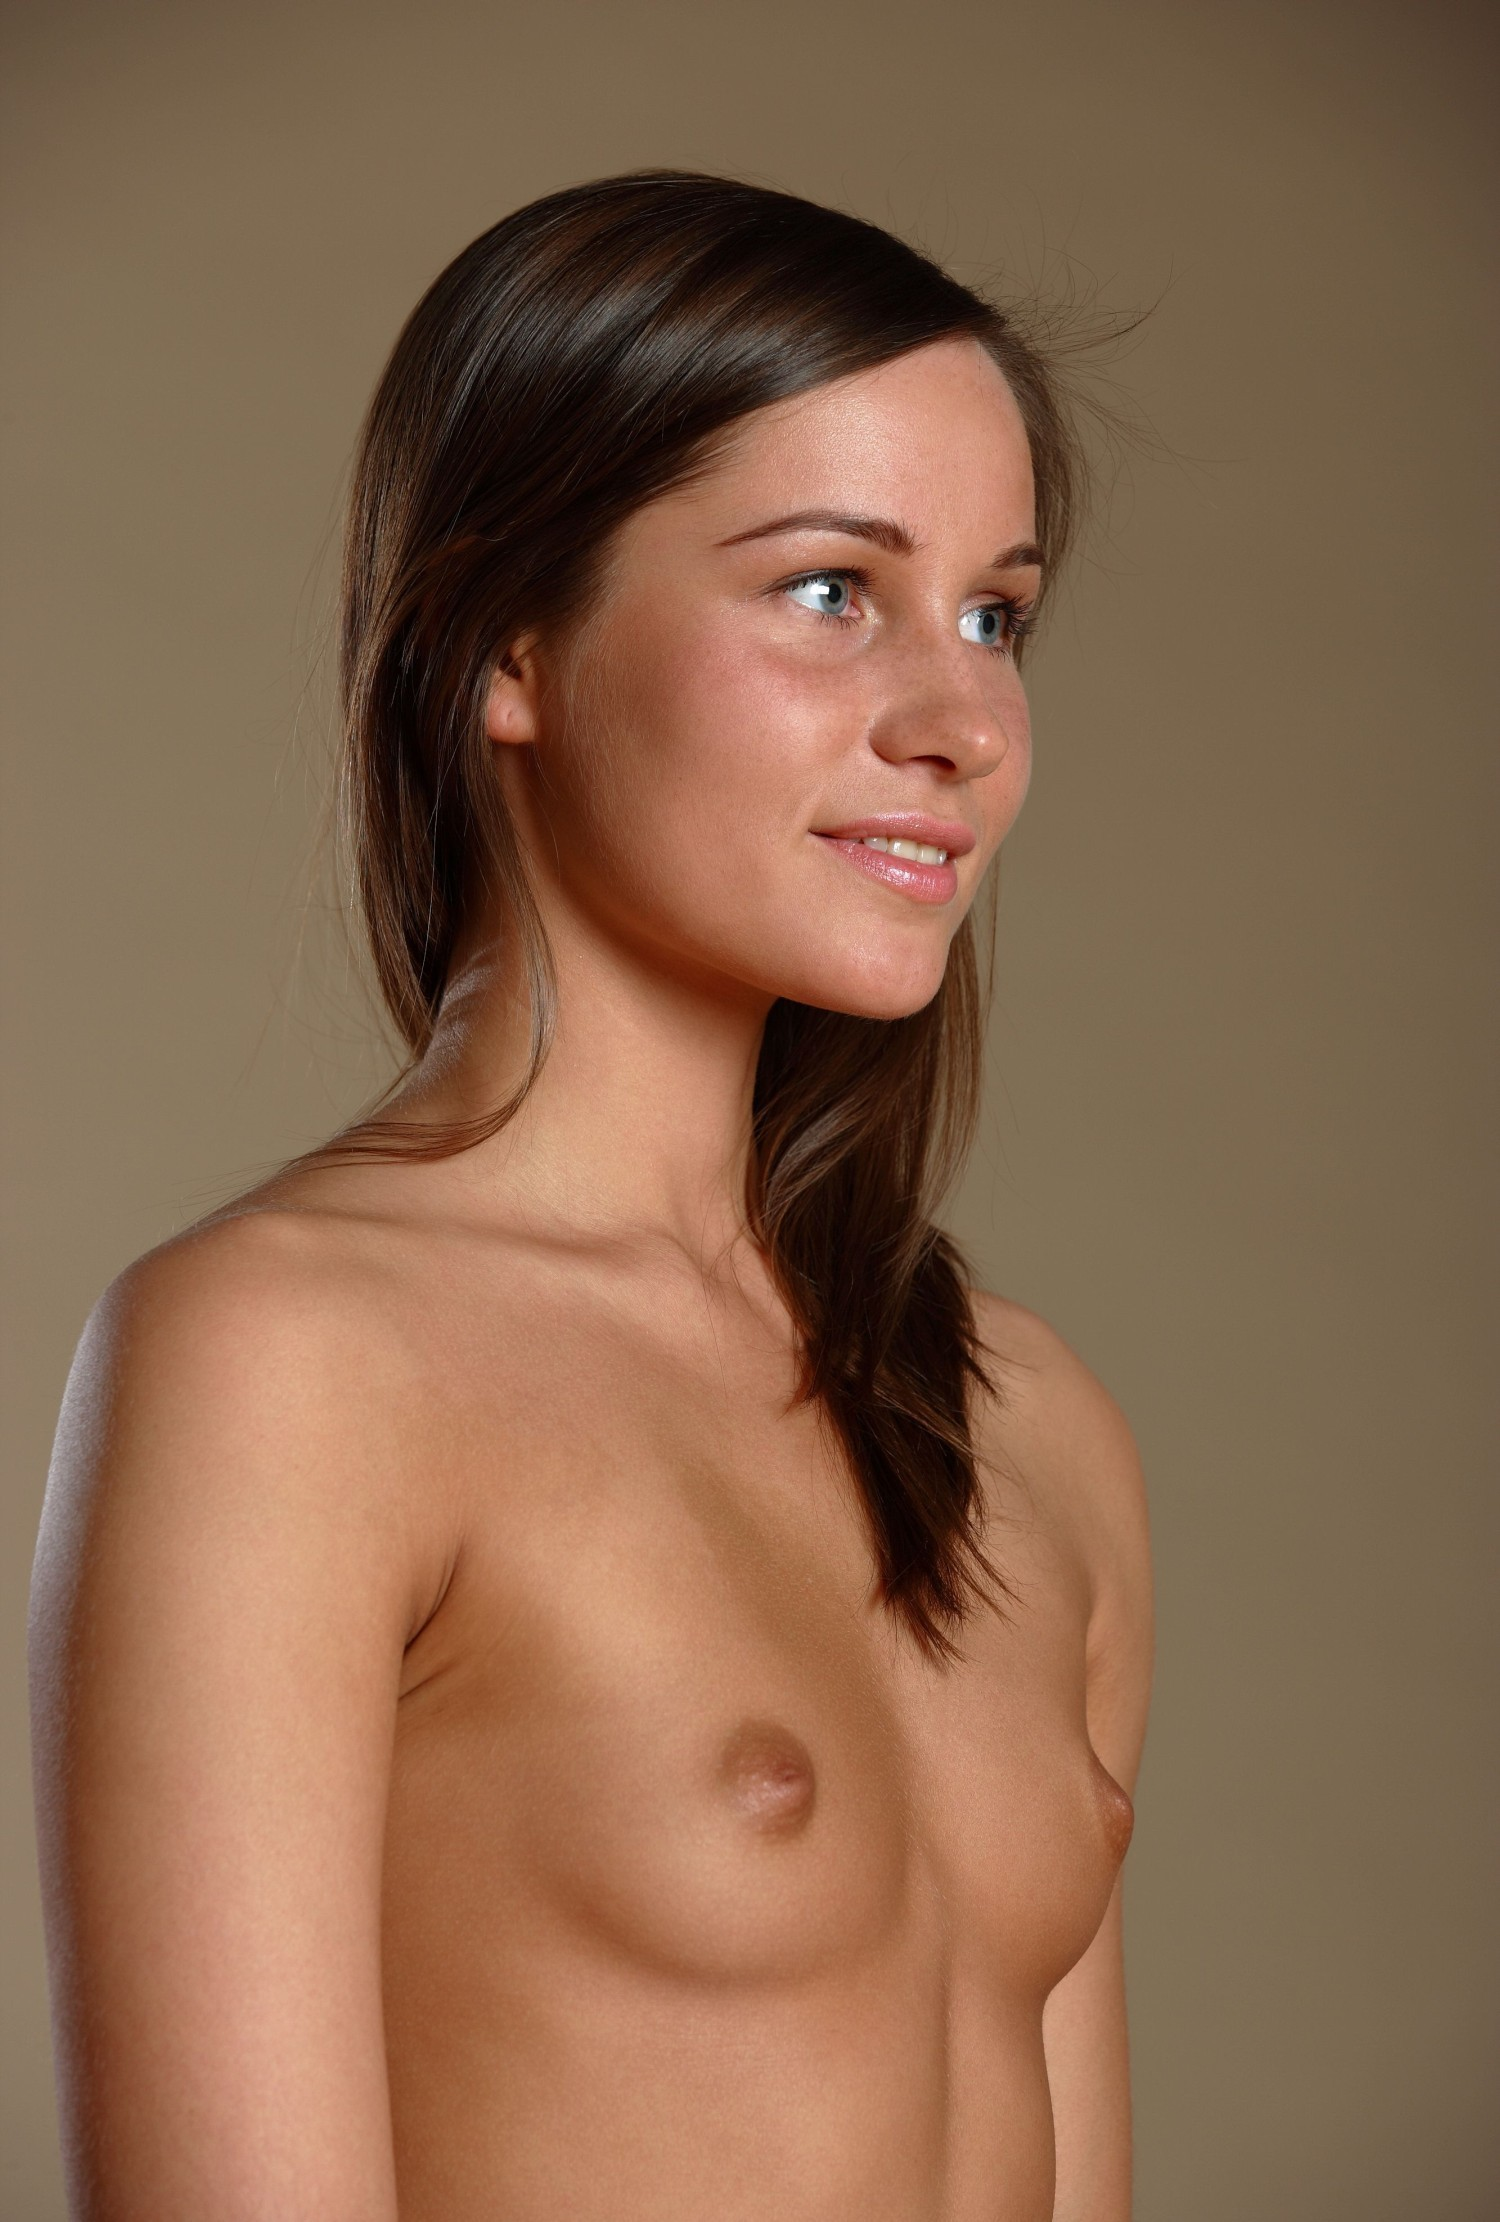 Kevin hart naked nude